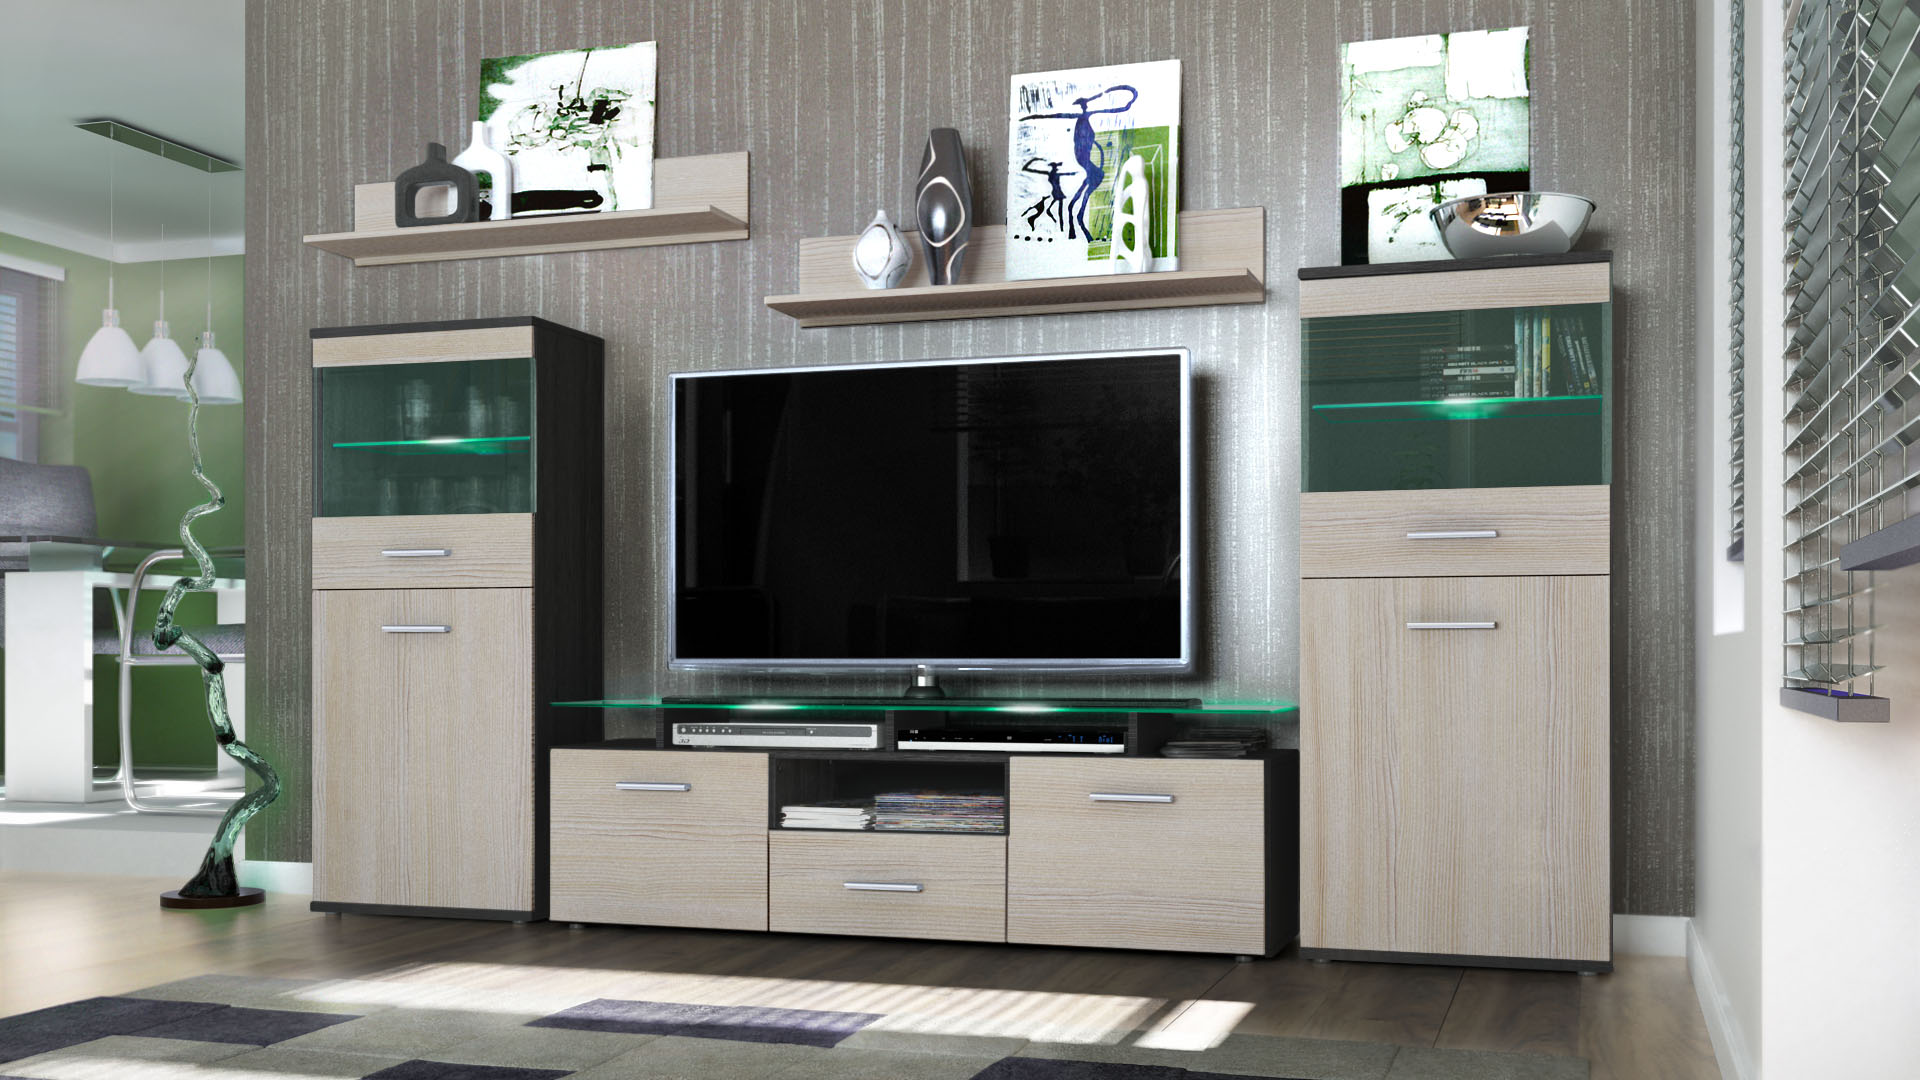 Wall unit living room furniture almada black high gloss natural tones ebay for High gloss black living room furniture